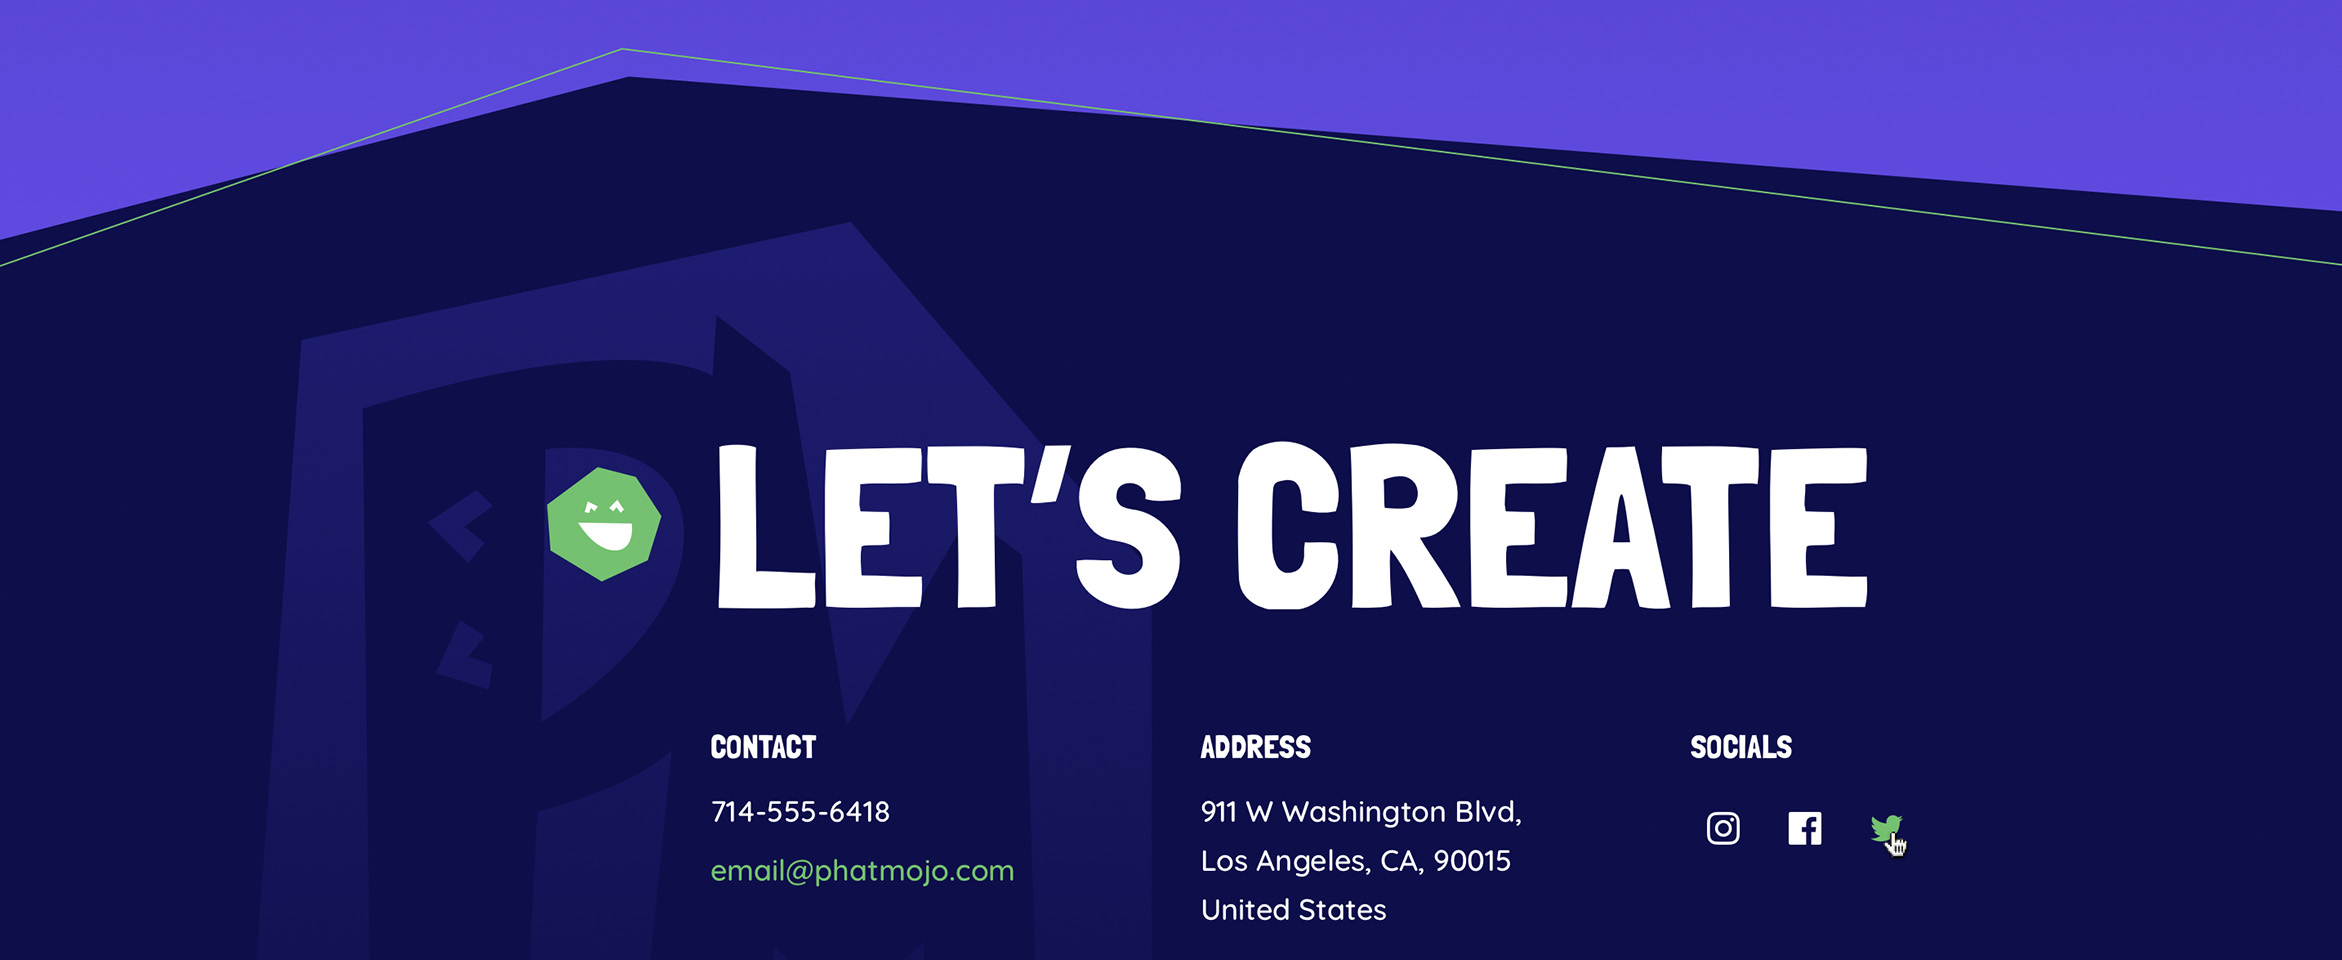 Creating a Playful Website for a Licensed Toy Design Agency Build Image-2